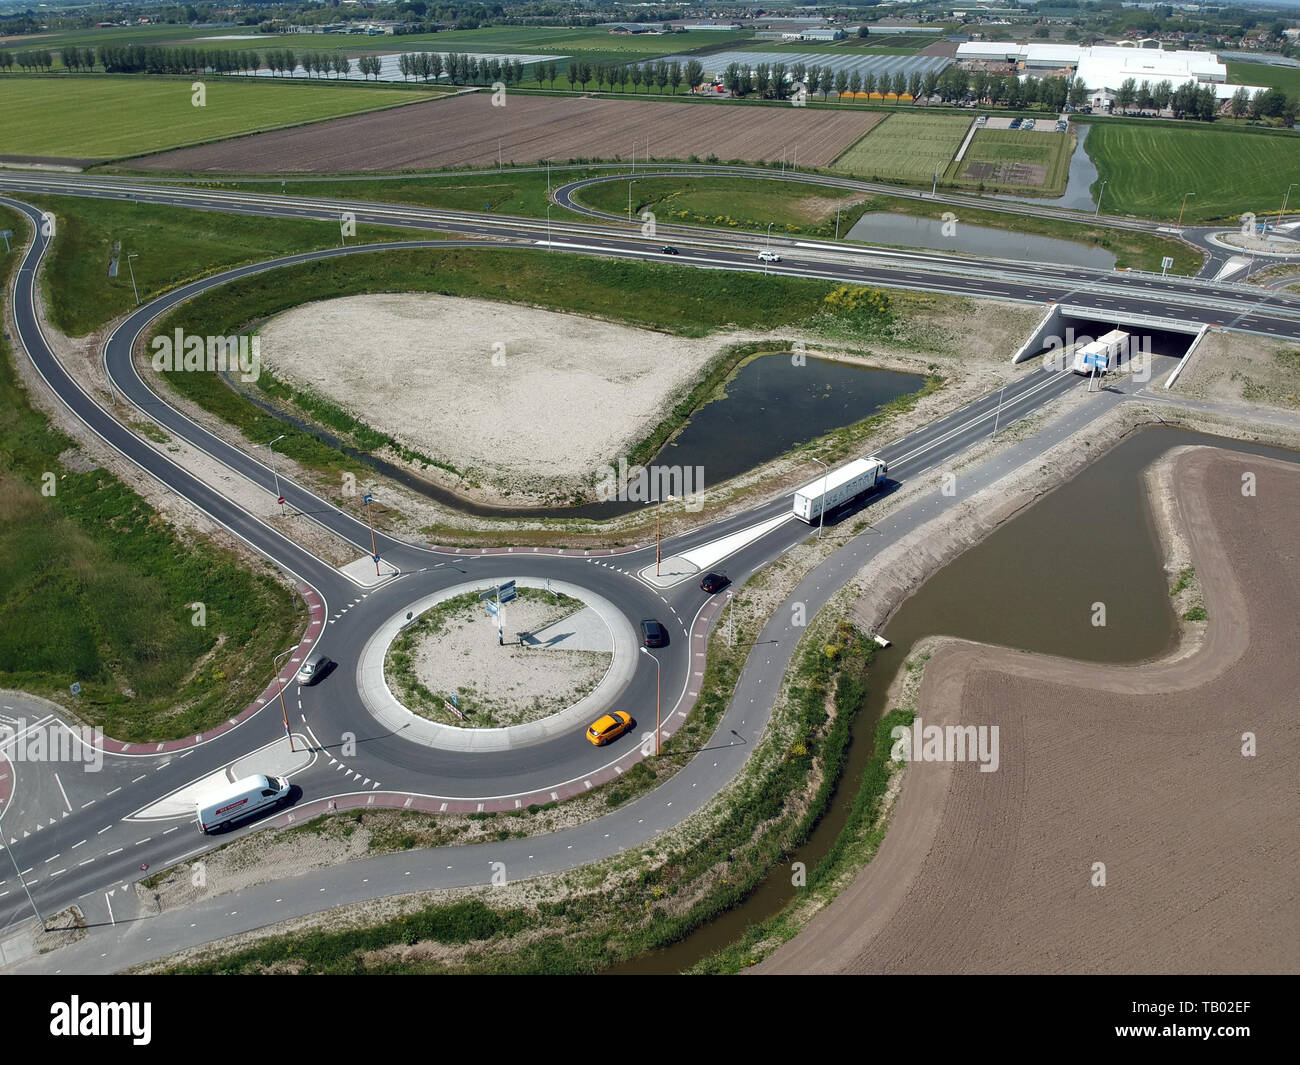 GROOTEBROEK, THE NETHERLANDS -  10 MEI 2019: Drone aerial photo of a traffic circle with on and off roads for the cars - Stock Image